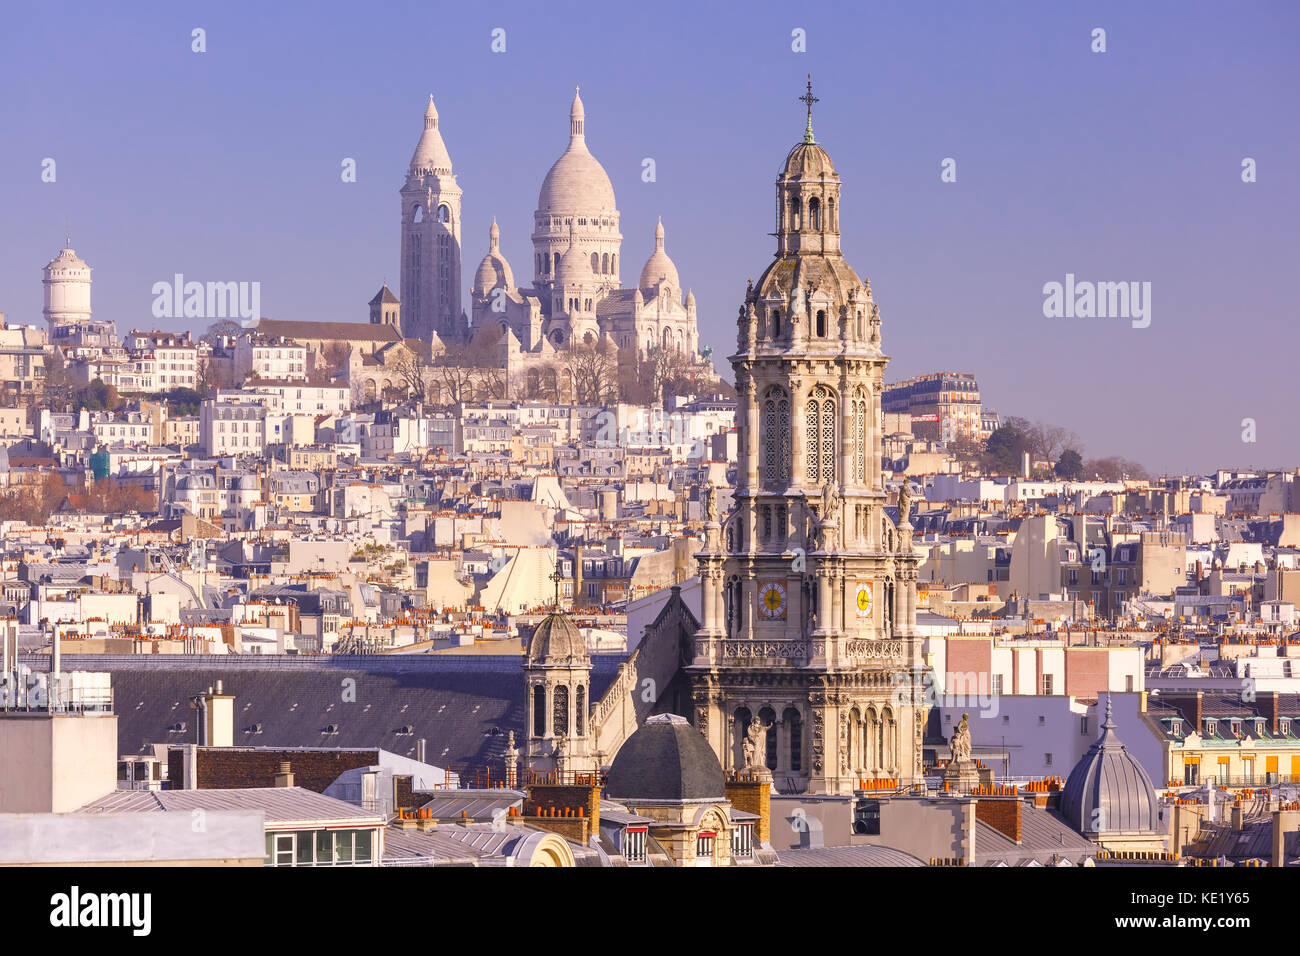 Sacre-Coeur Basilica in the morning, Paris, France - Stock Image